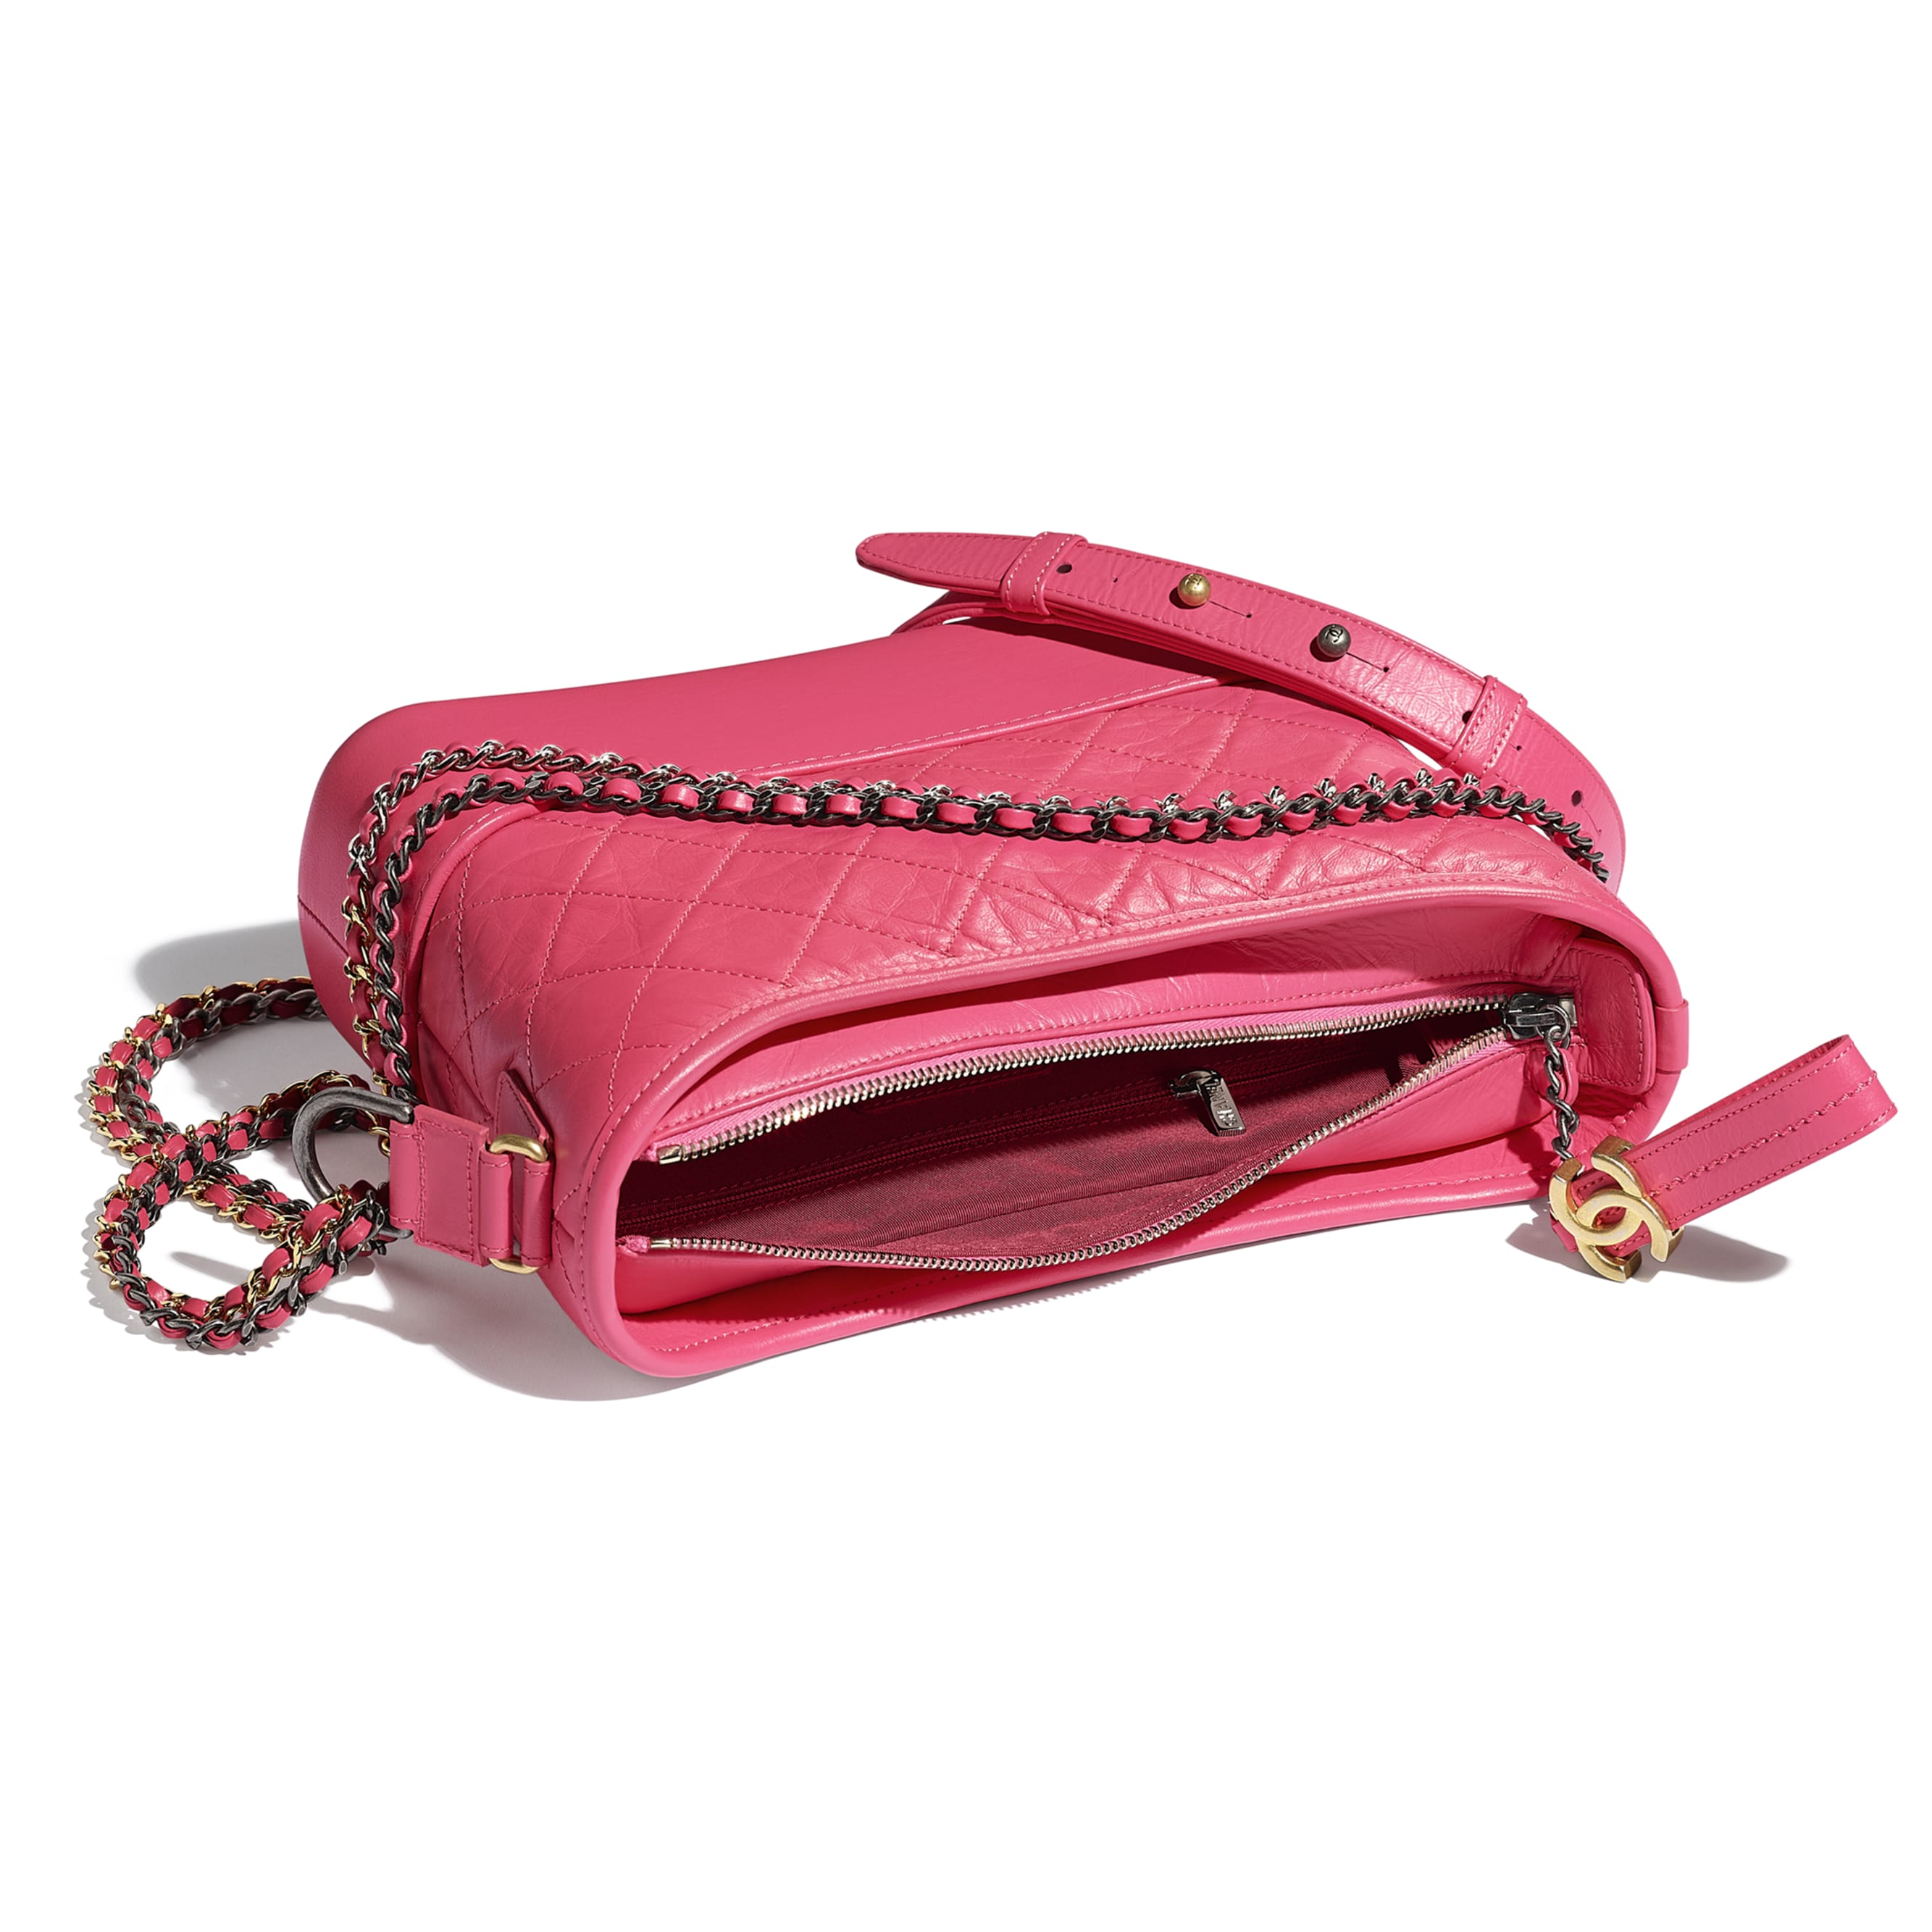 CHANEL'S GABRIELLE Hobo Handbag - Pink - Aged Calfskin, Smooth Calfskin, Gold-Tone, Silver-Tone & Ruthenium-Finish Metal - CHANEL - Other view - see standard sized version